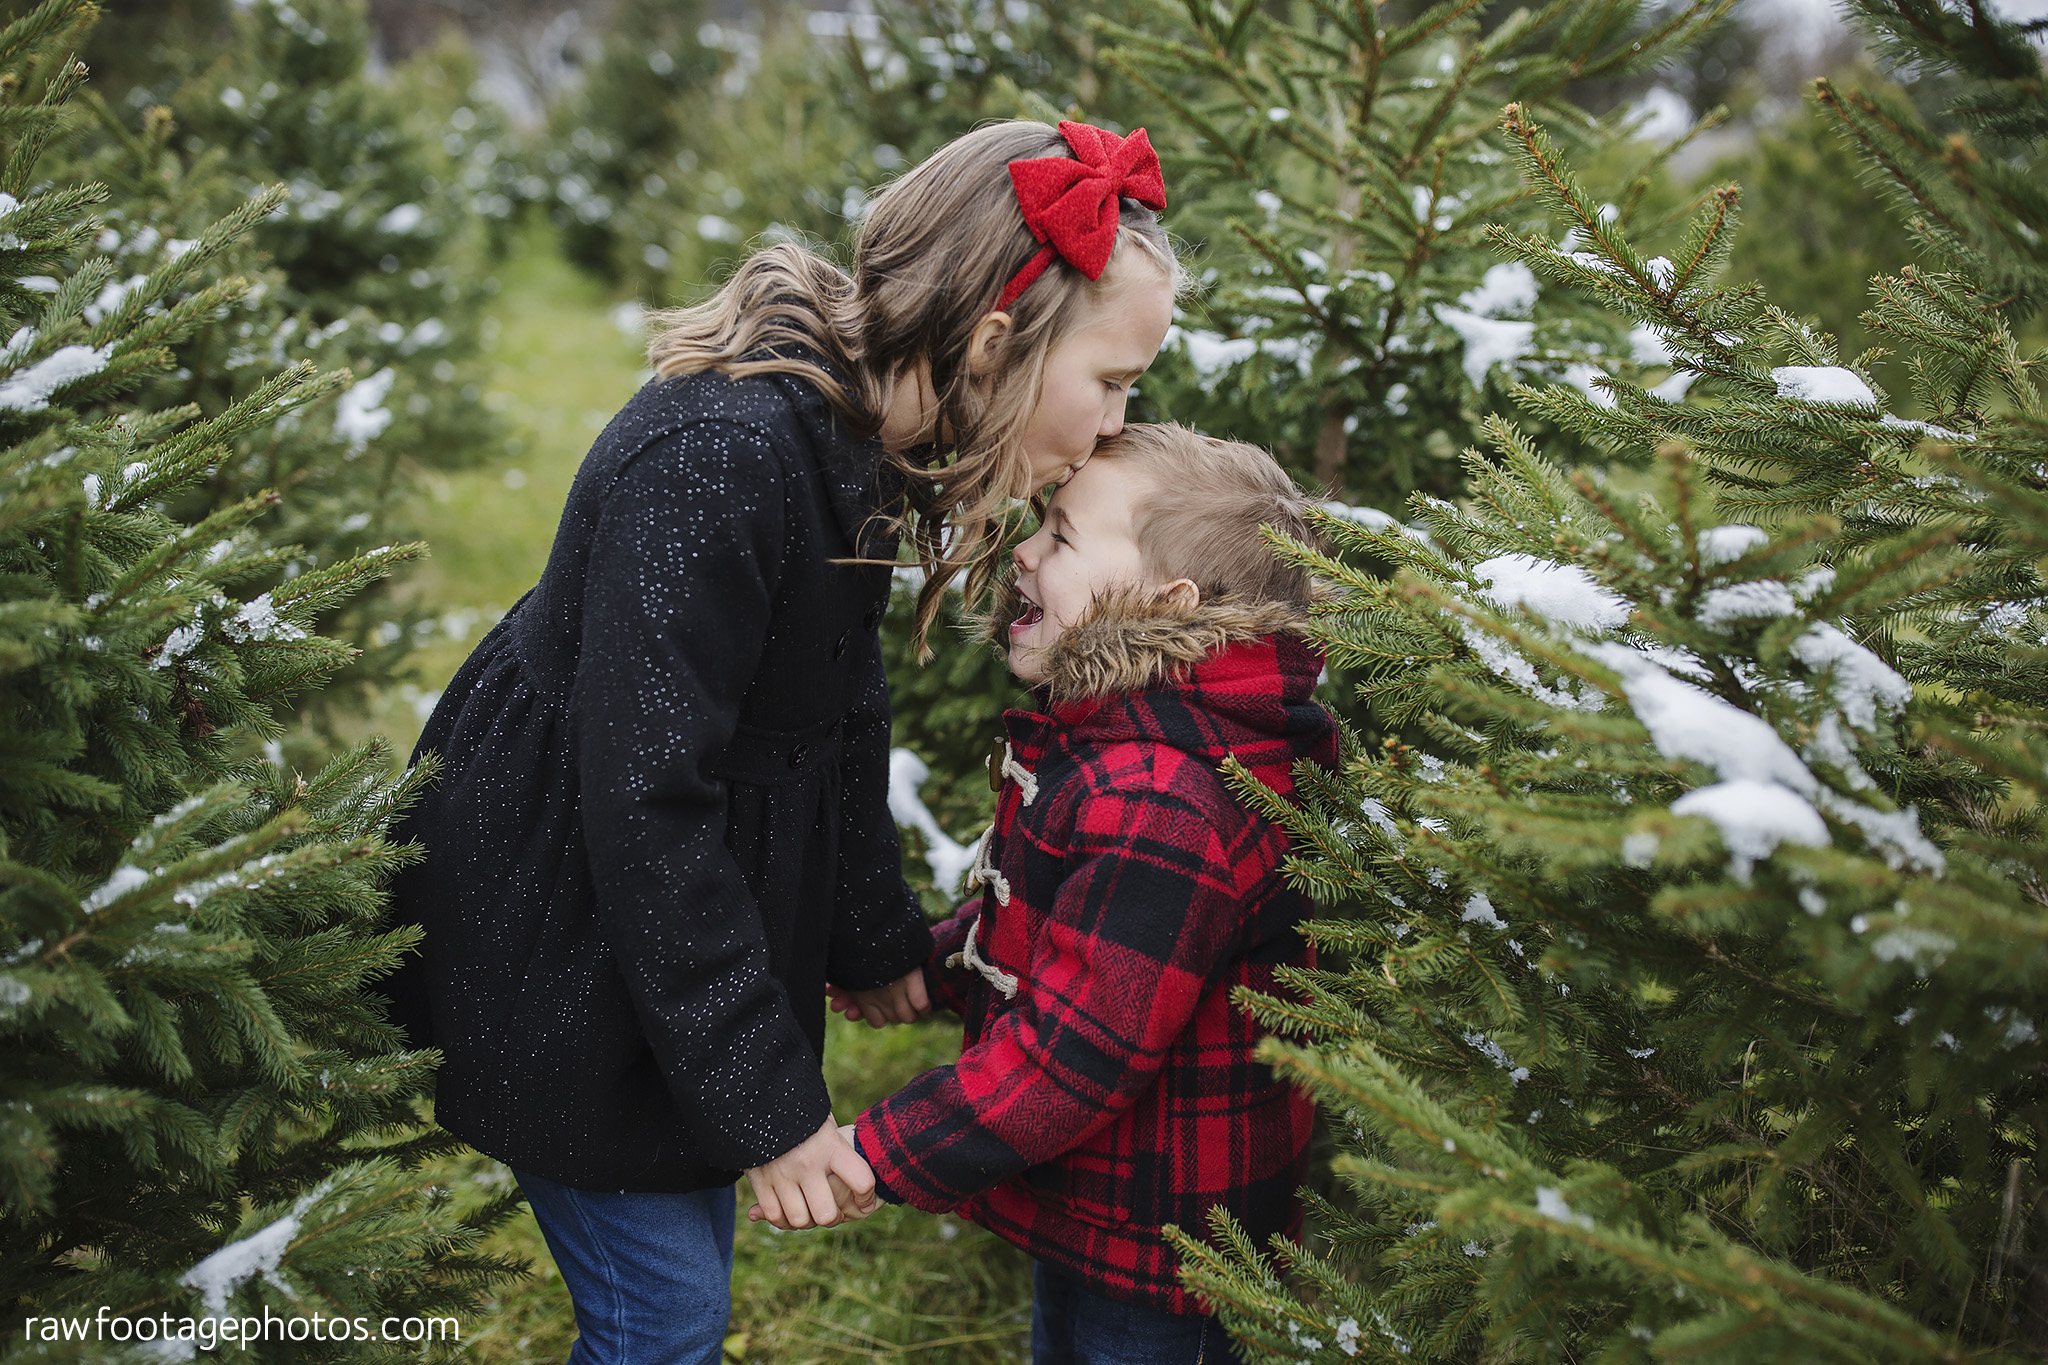 london_ontario_family_photographer-raw_footage_photography-tree_farm_minis-christmas_sessions-winter0029.jpg